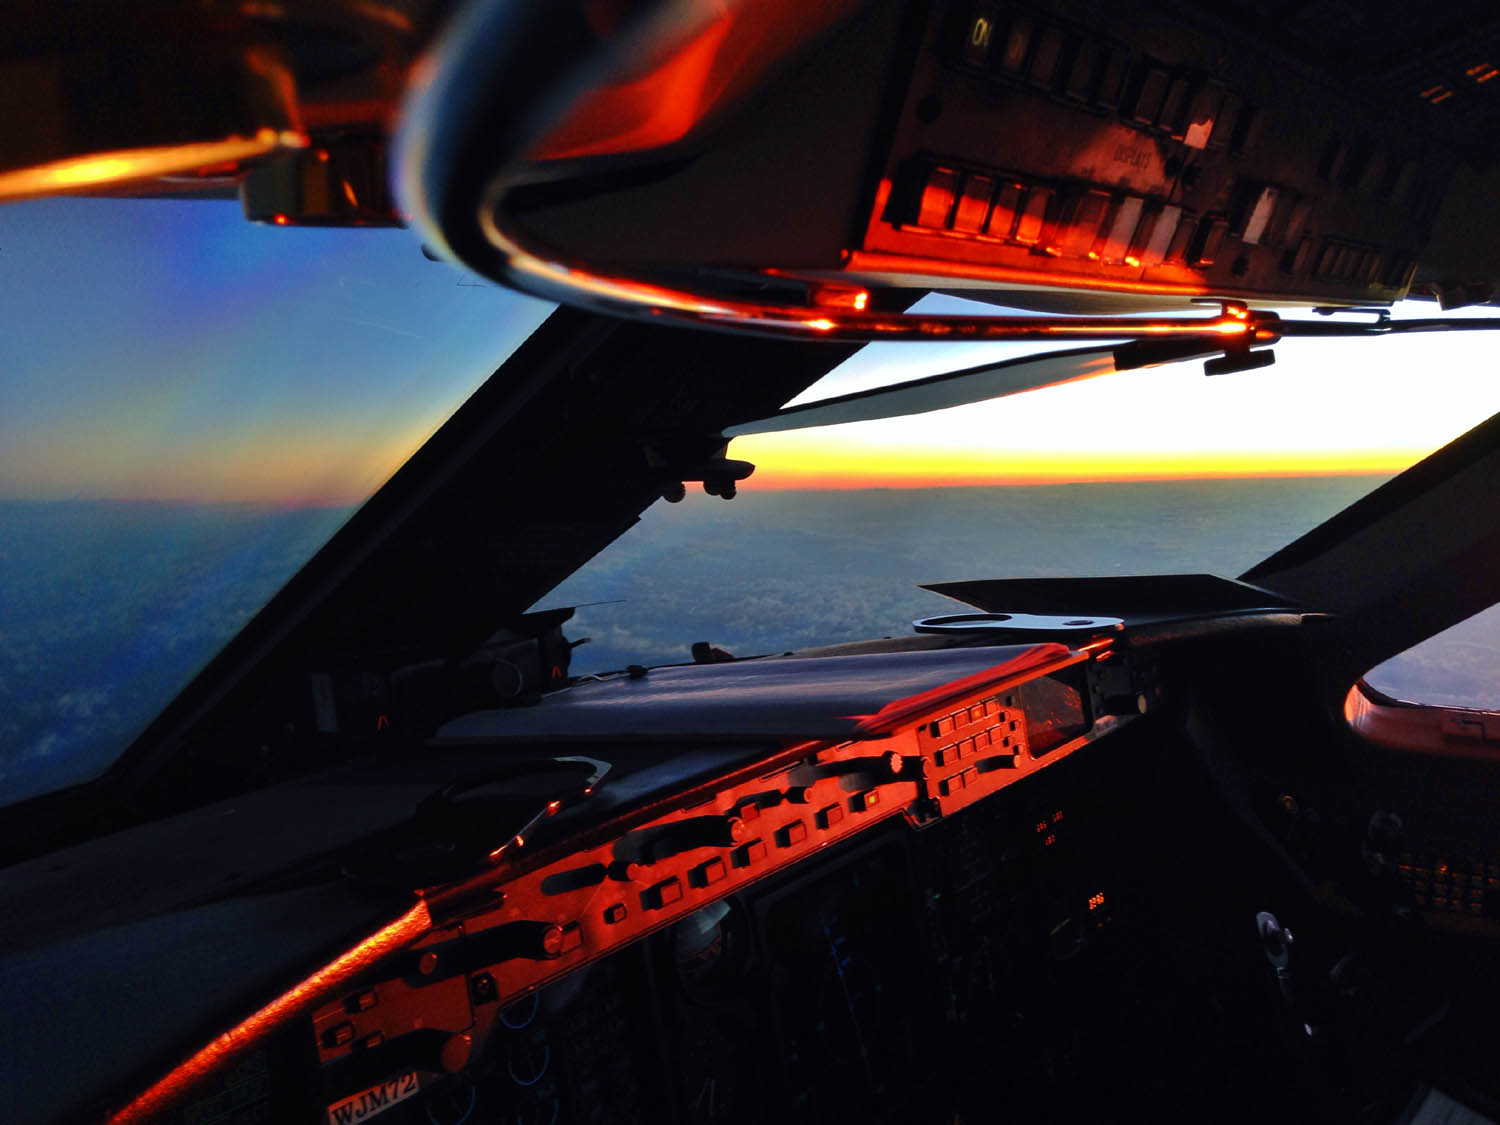 Those red-eyes can be painfully long.  It's always worth it when a beautiful sunrise casts that reddish glow across the cockpit.